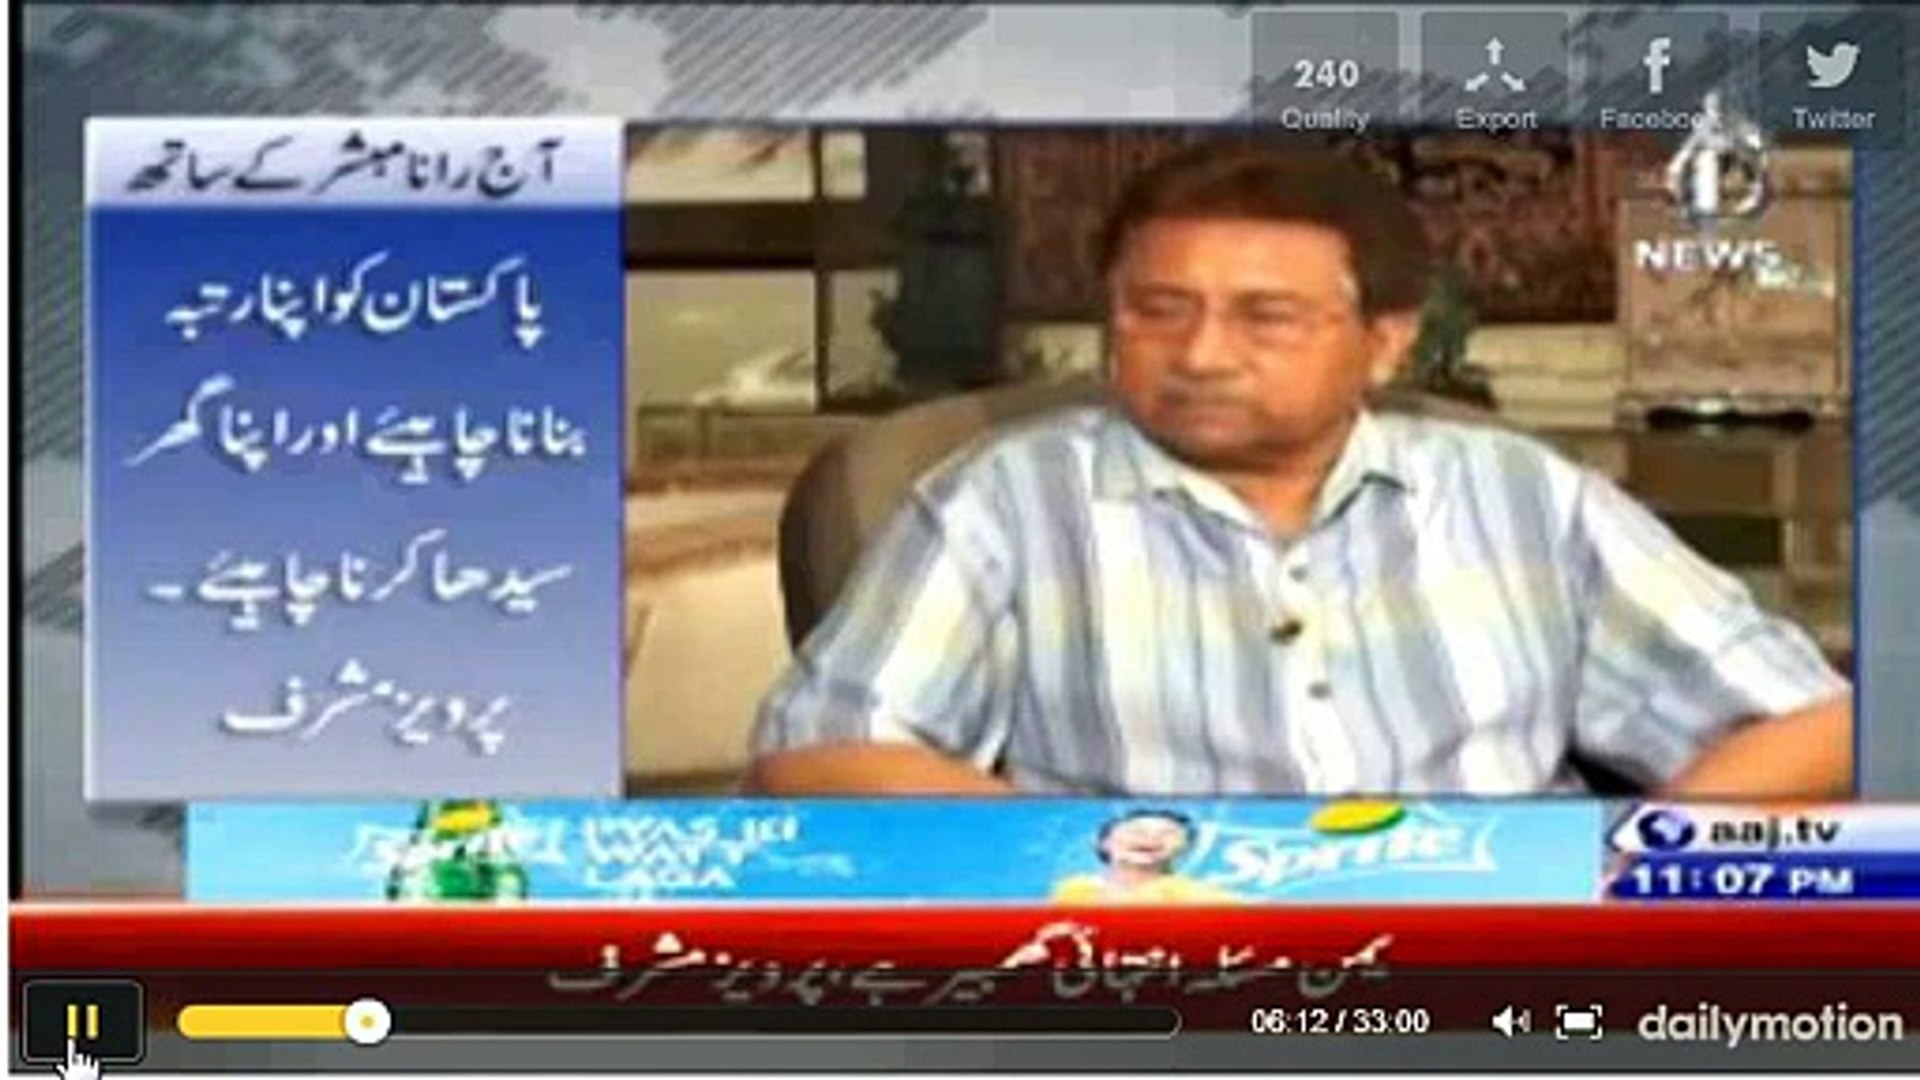 Saudia Arabia Bar Bar Humein Push Kyon Kar Raha Hai - Watch Musharaf Answer